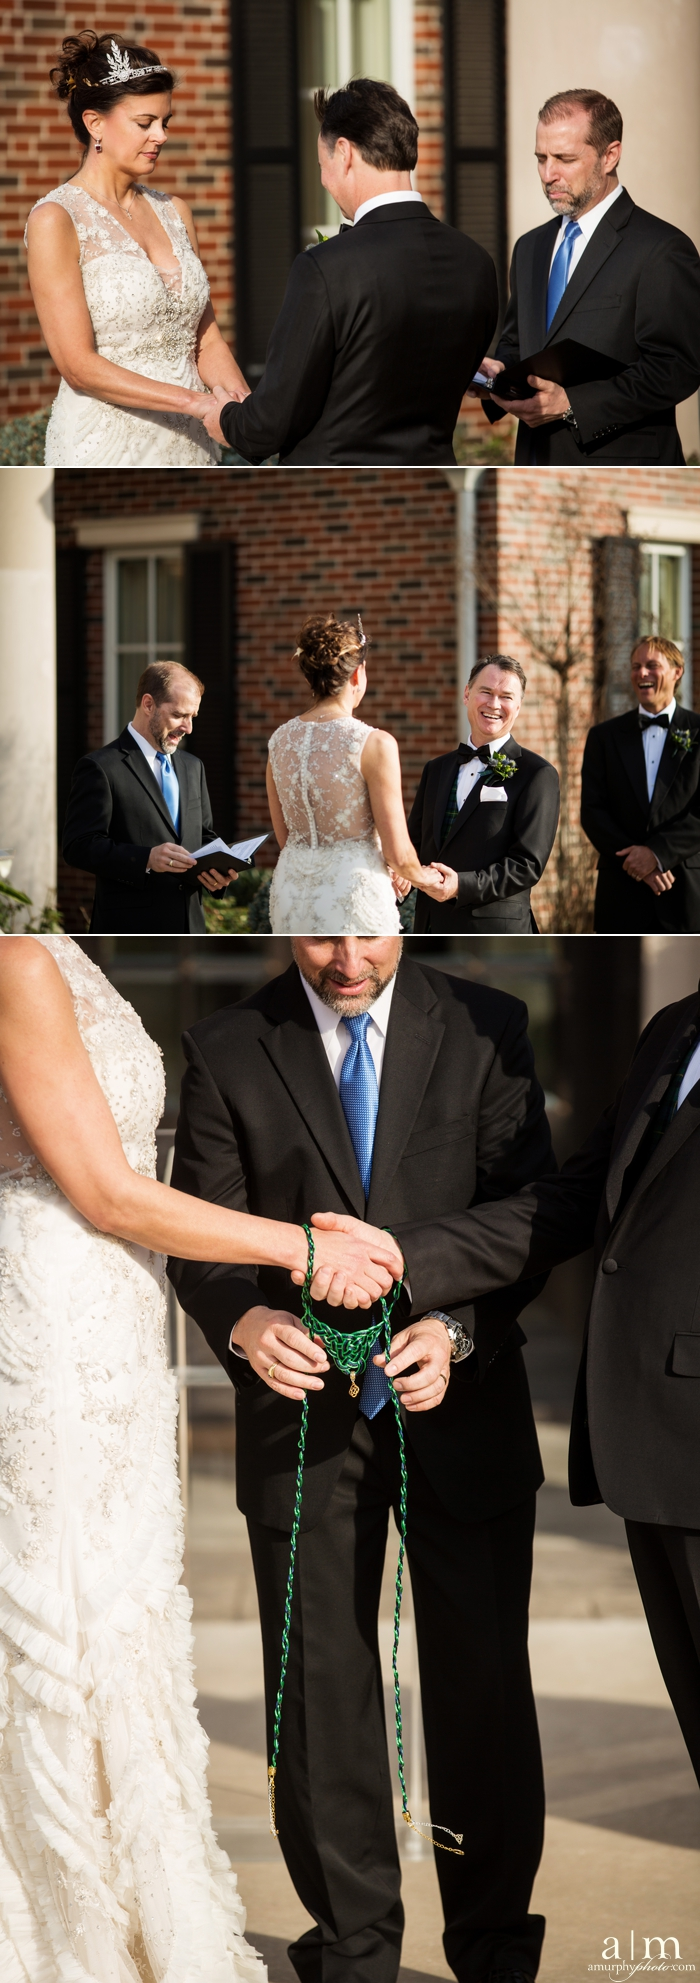 Bartlesville Wedding 7.jpg